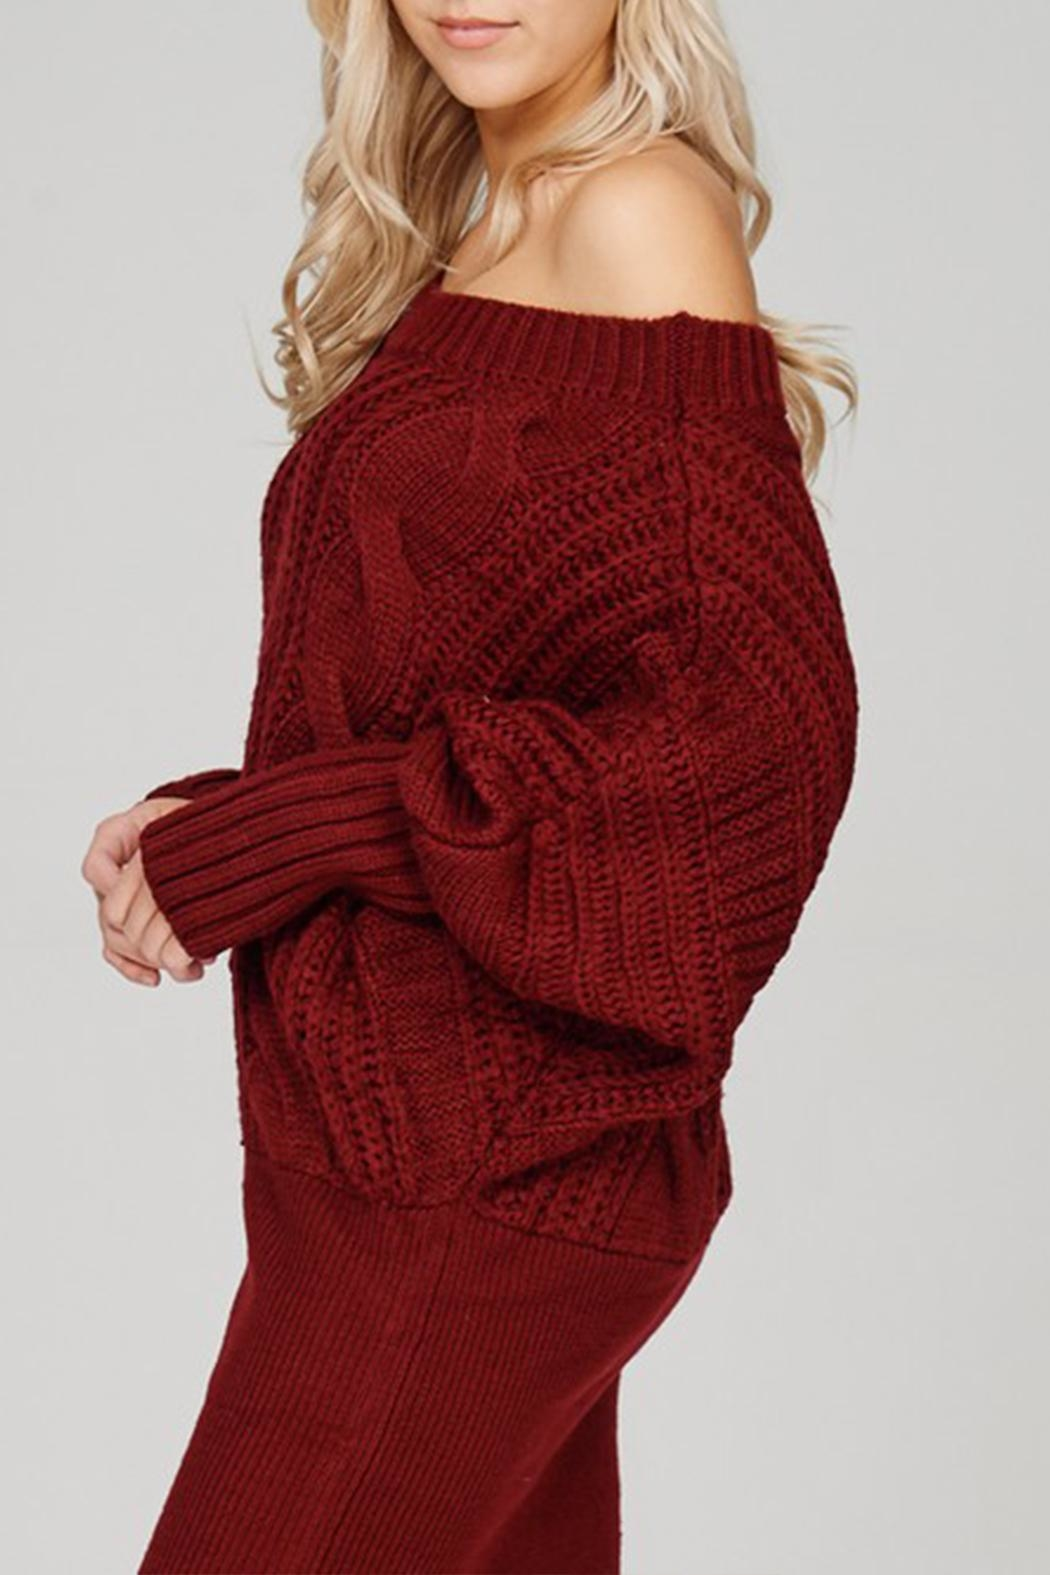 Main Strip Cable-Knit Sweater Mini-Dress - Main Image